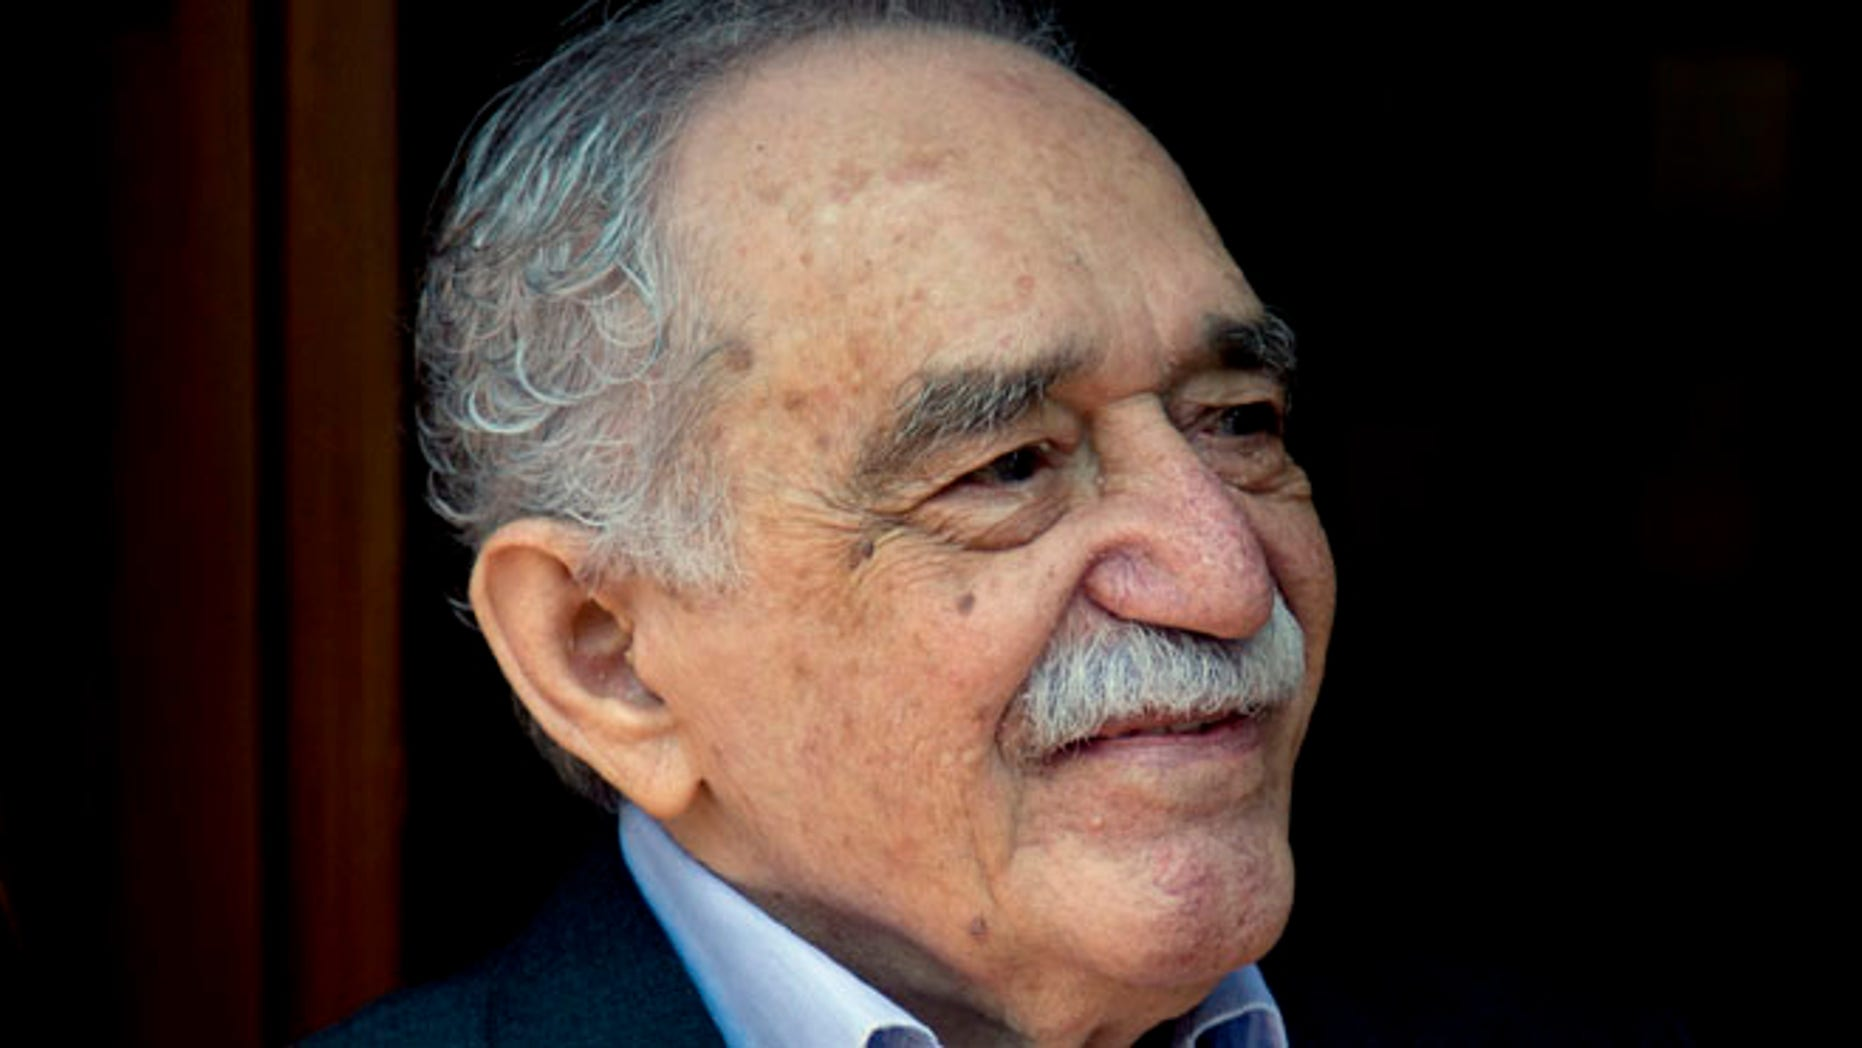 March 6, 2014 In this file photo, Colombian Nobel Literature laureate Gabriel Garcia Marquez greets fans and reporters outside his home on his 87th birthday in Mexico City.